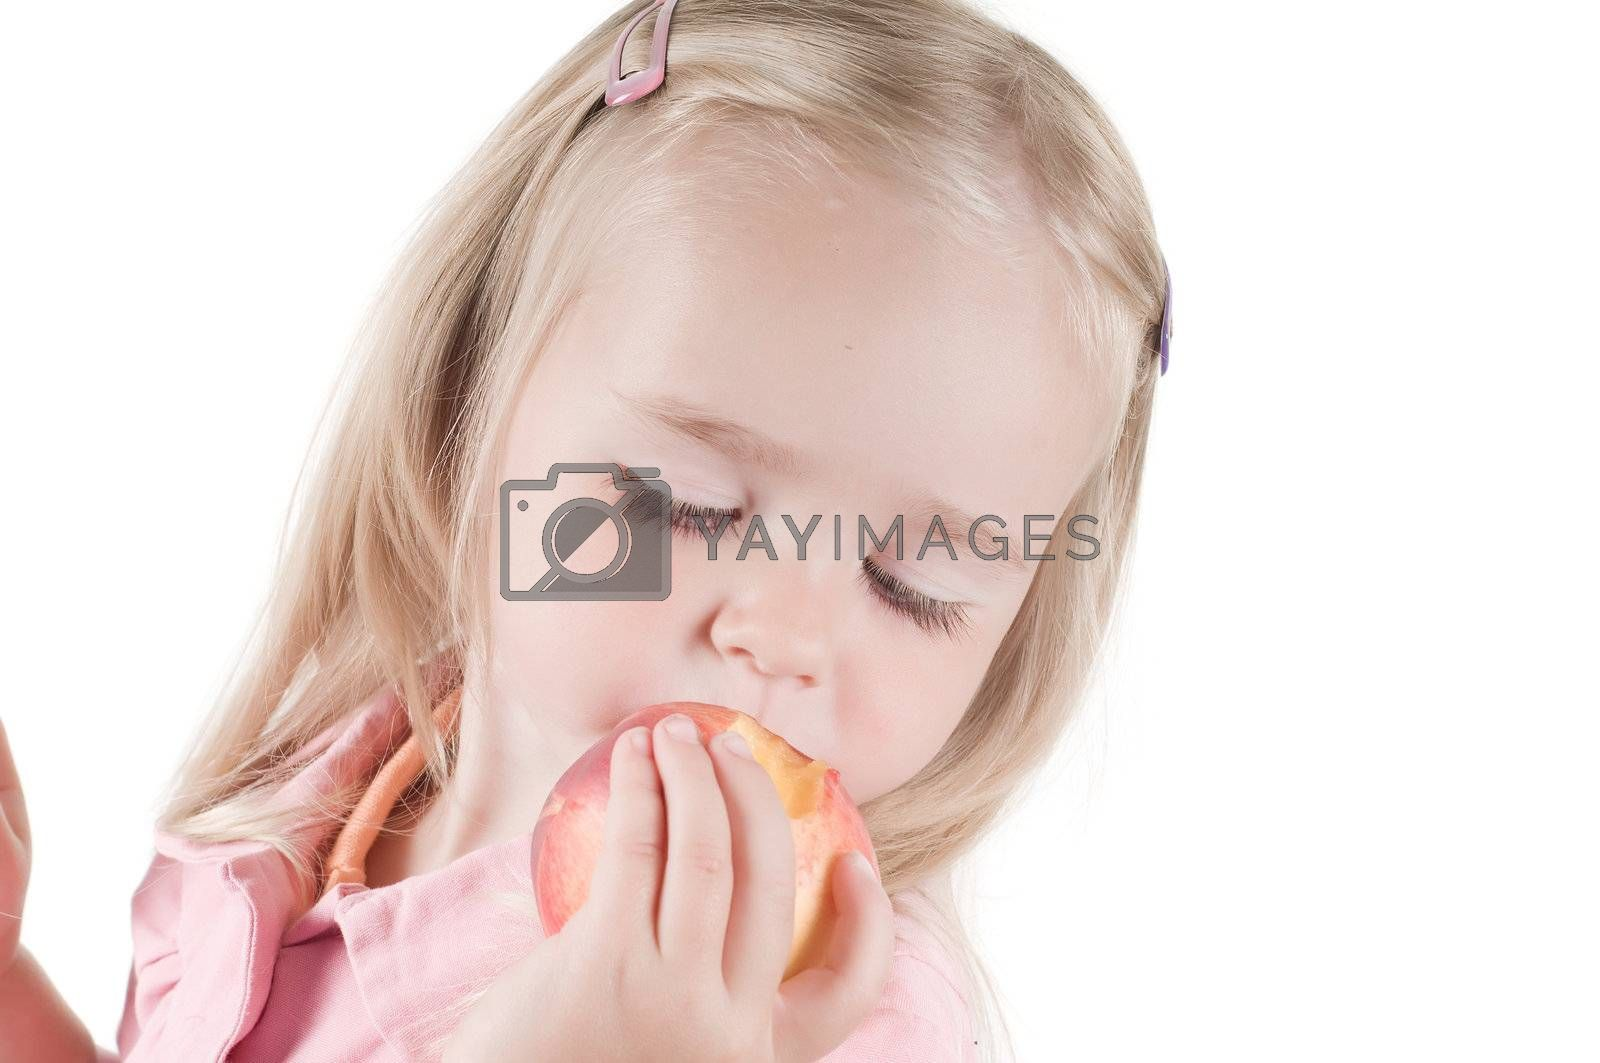 Royalty free image of Little girl eating peach in studio by anytka